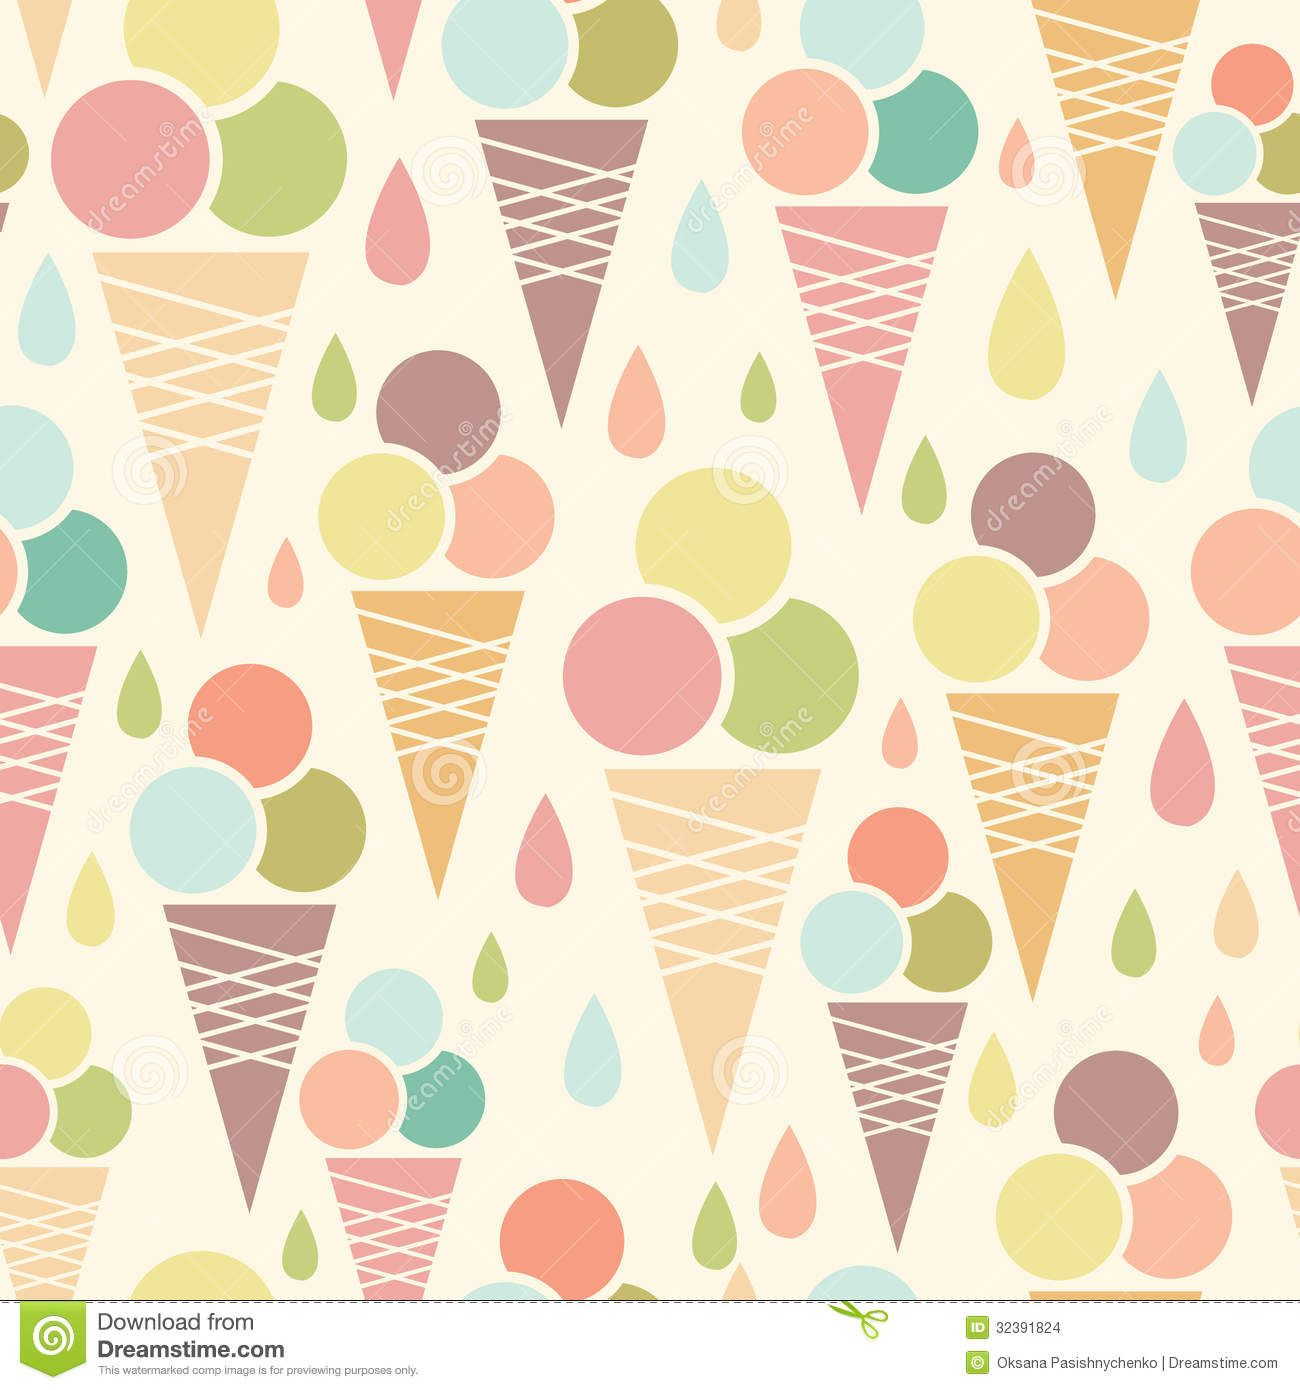 Cute Colorful Ice Cream Seamless Pattern Background: Vector Ice Cream Cones Seamless